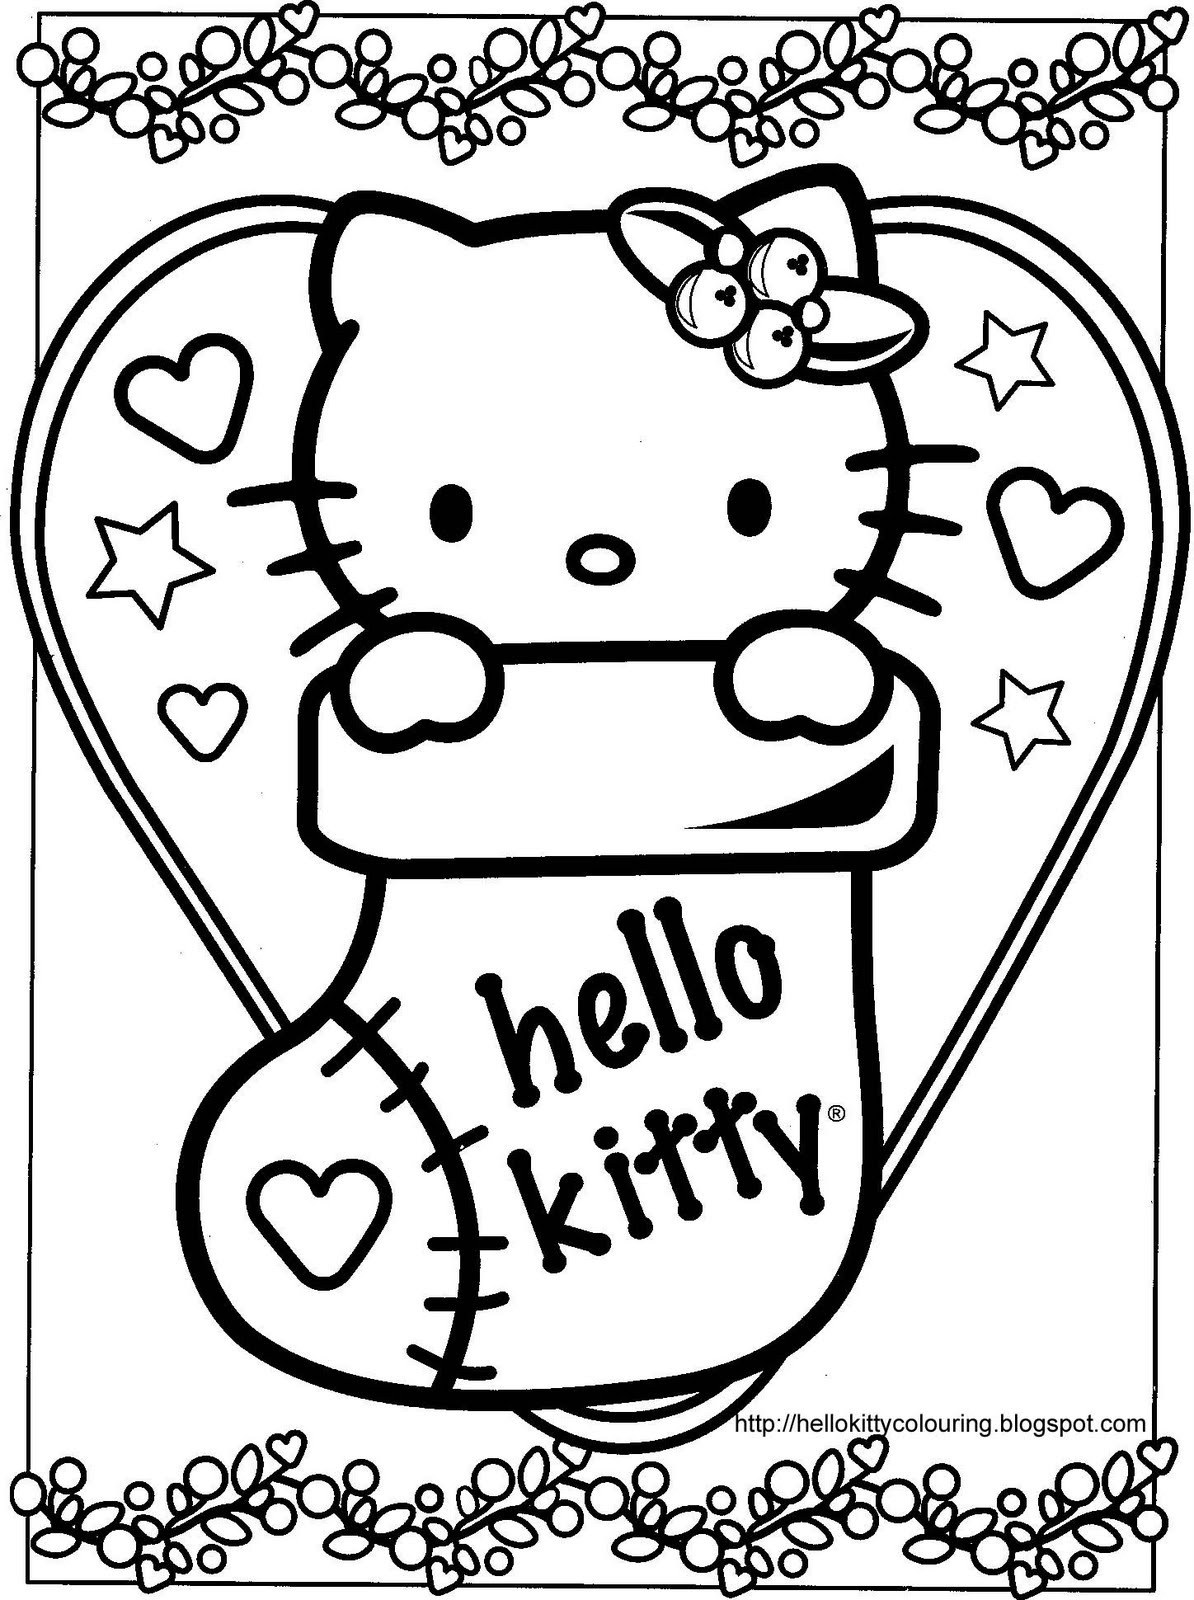 hello kitty christmas colouring pages christmas hello kitty hello colouring christmas kitty pages